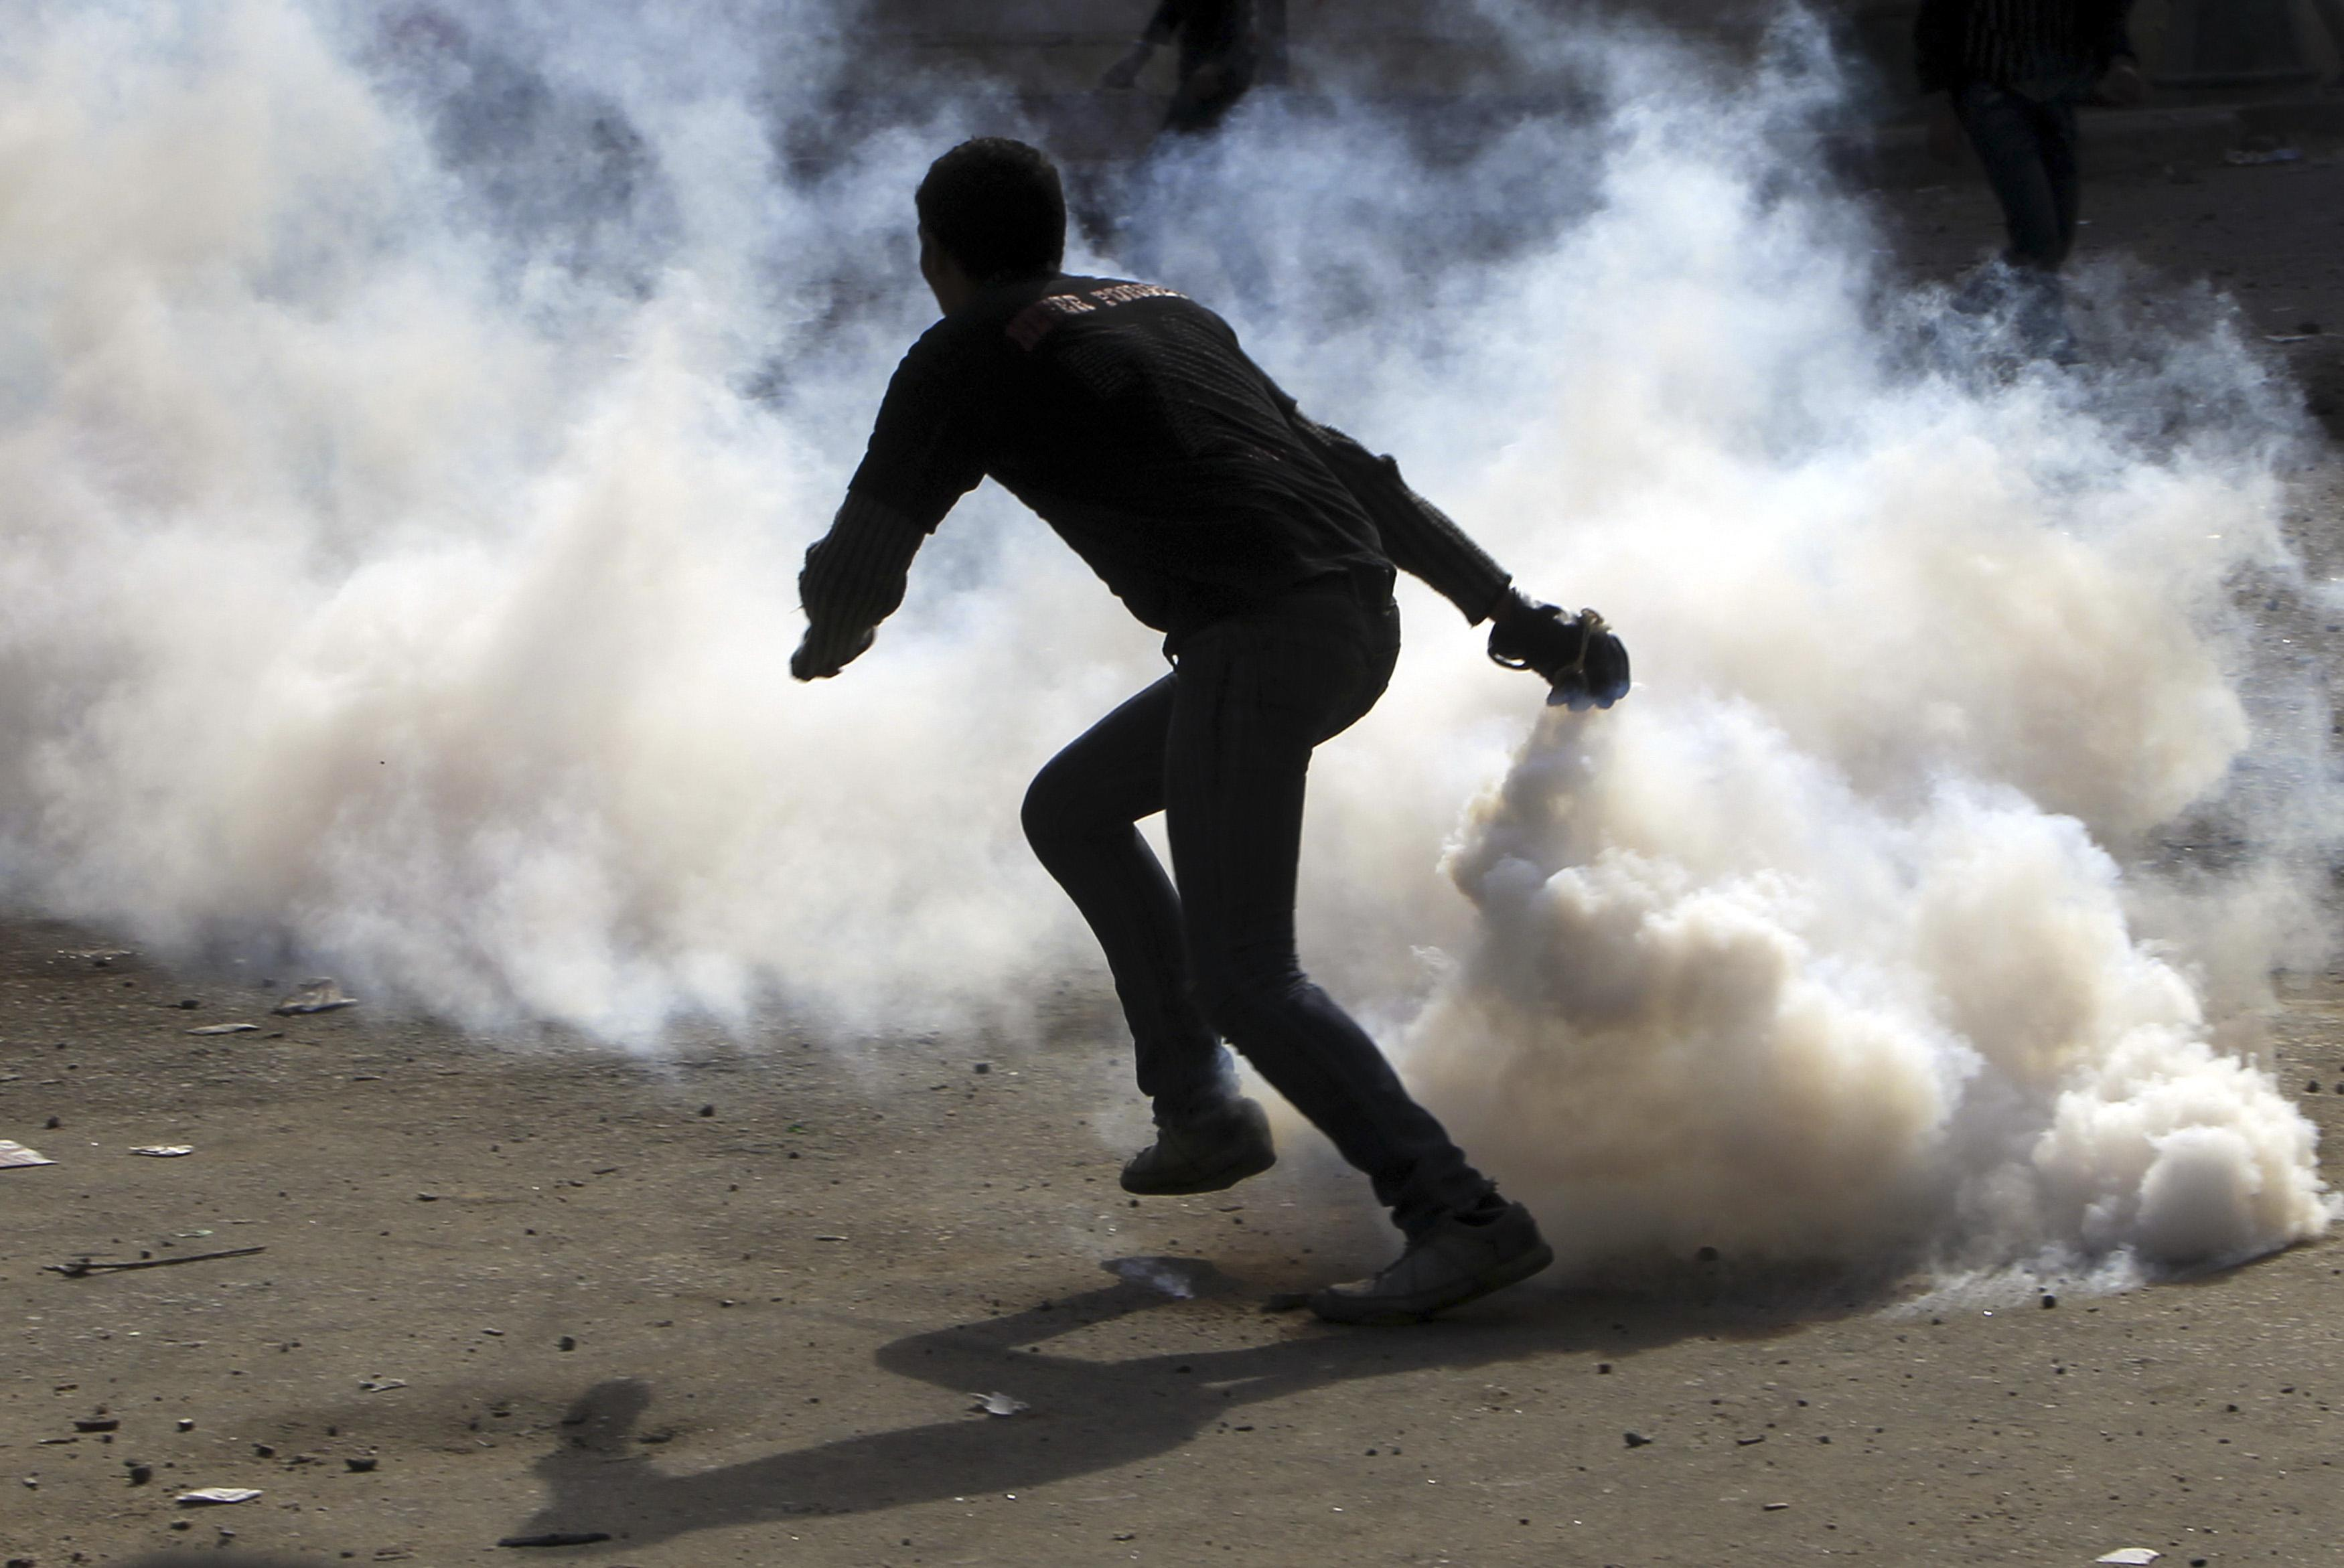 8 policemen wounded, molotov thrown at parliament - Interior Ministry